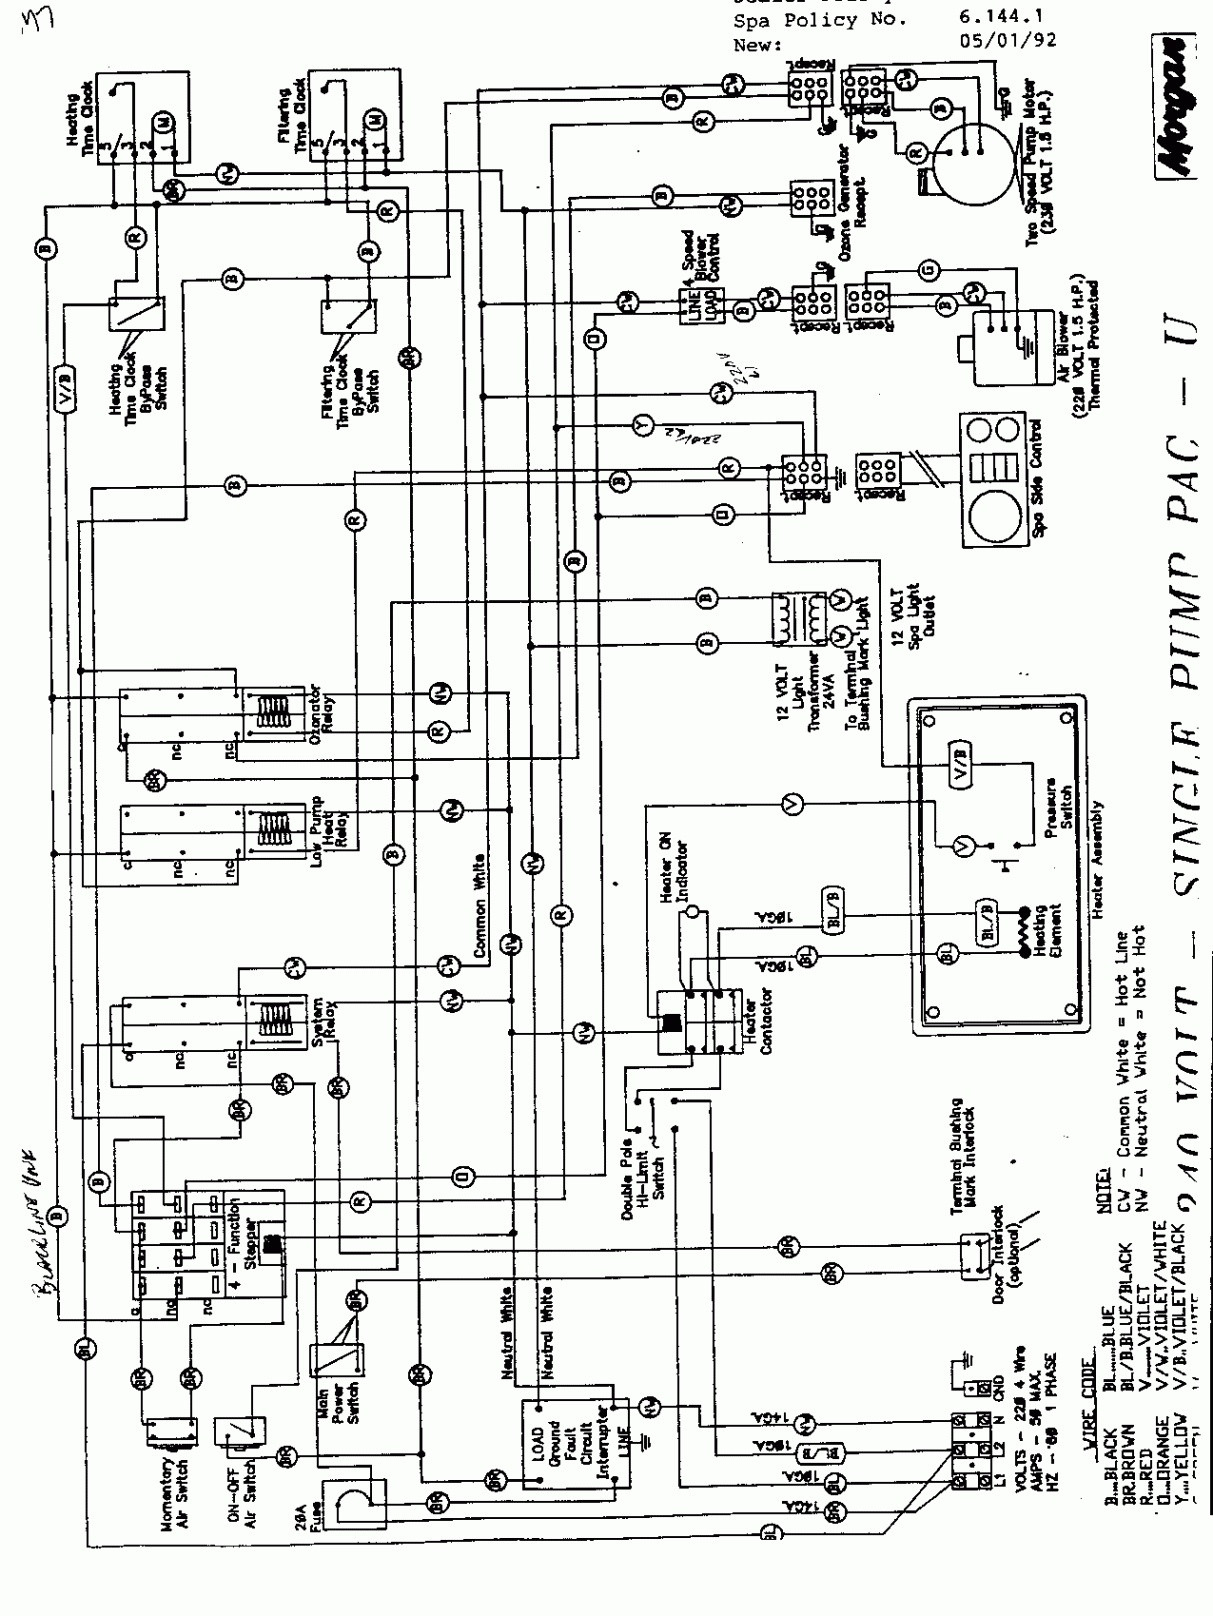 Cal Spa Wiring Diagram $ Apktodownload.com